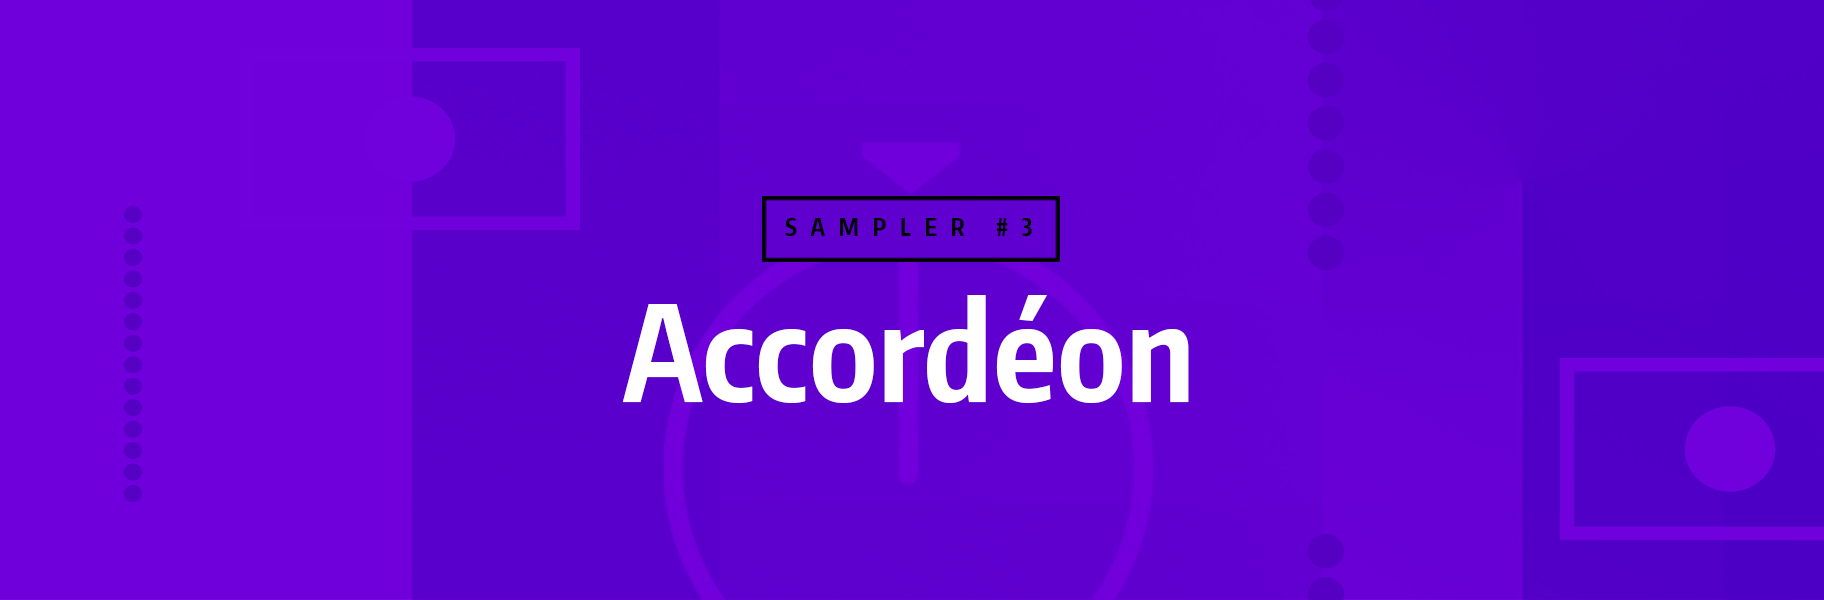 Sampler Instrument #3 - Accordéon